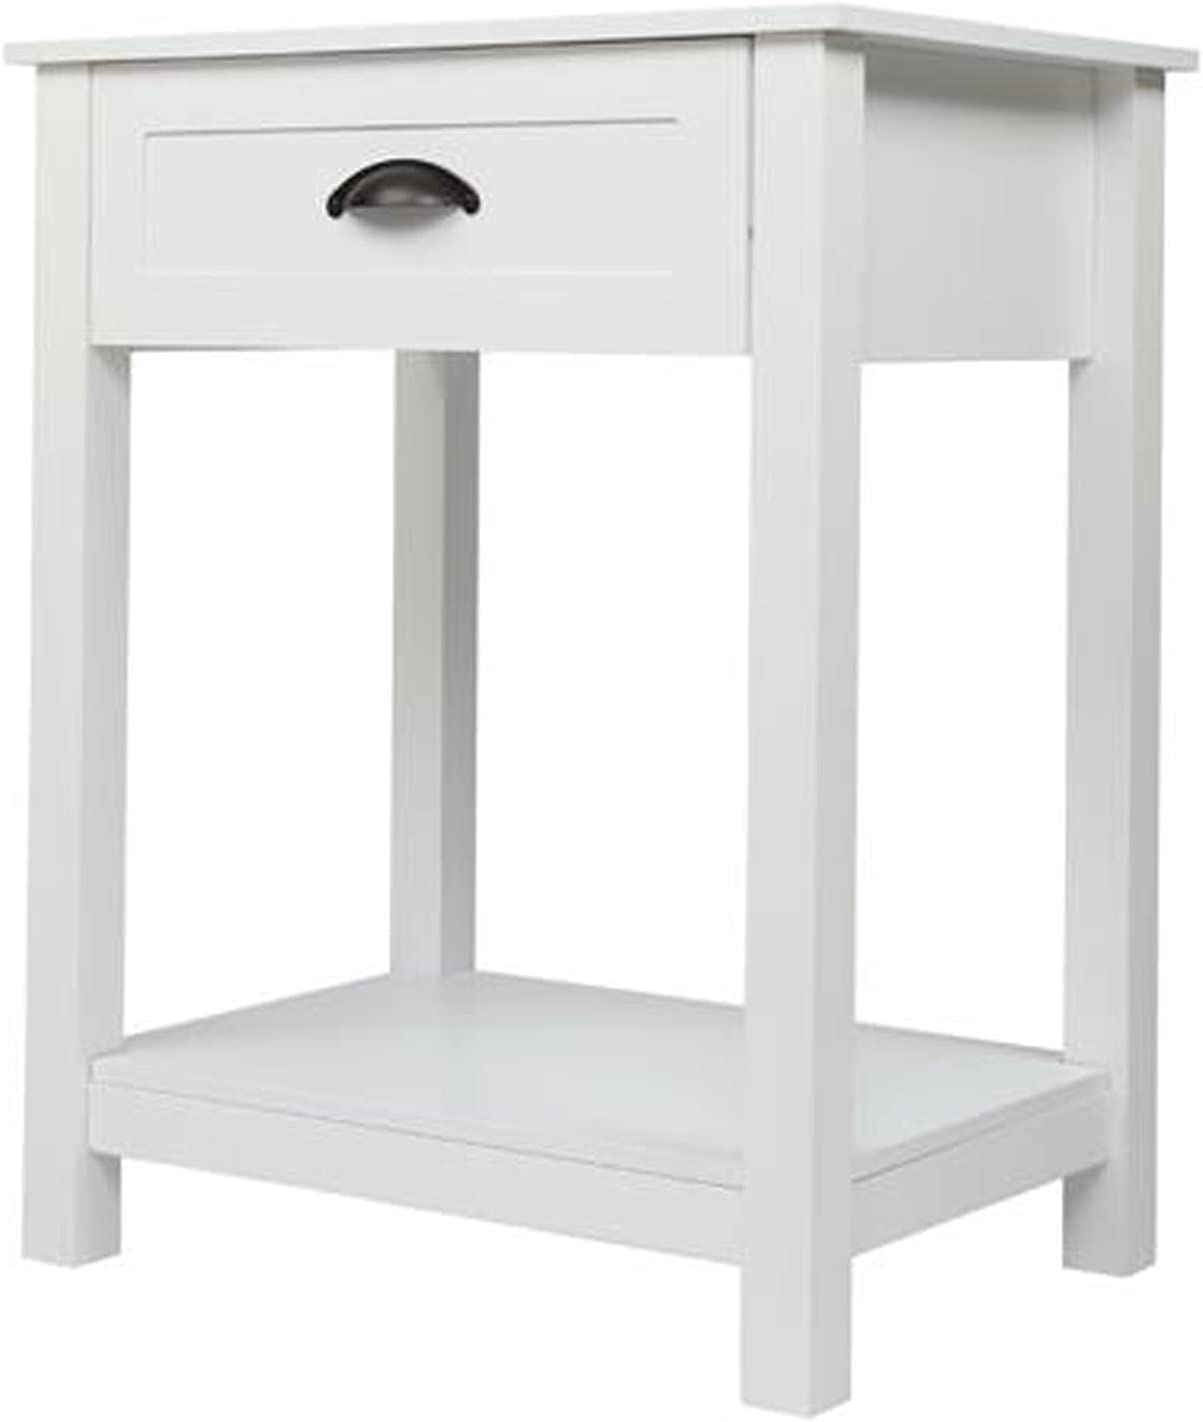 Super-cheap Electric oven White Nightstand with Stable Drawer Quality inspection Frame Storage